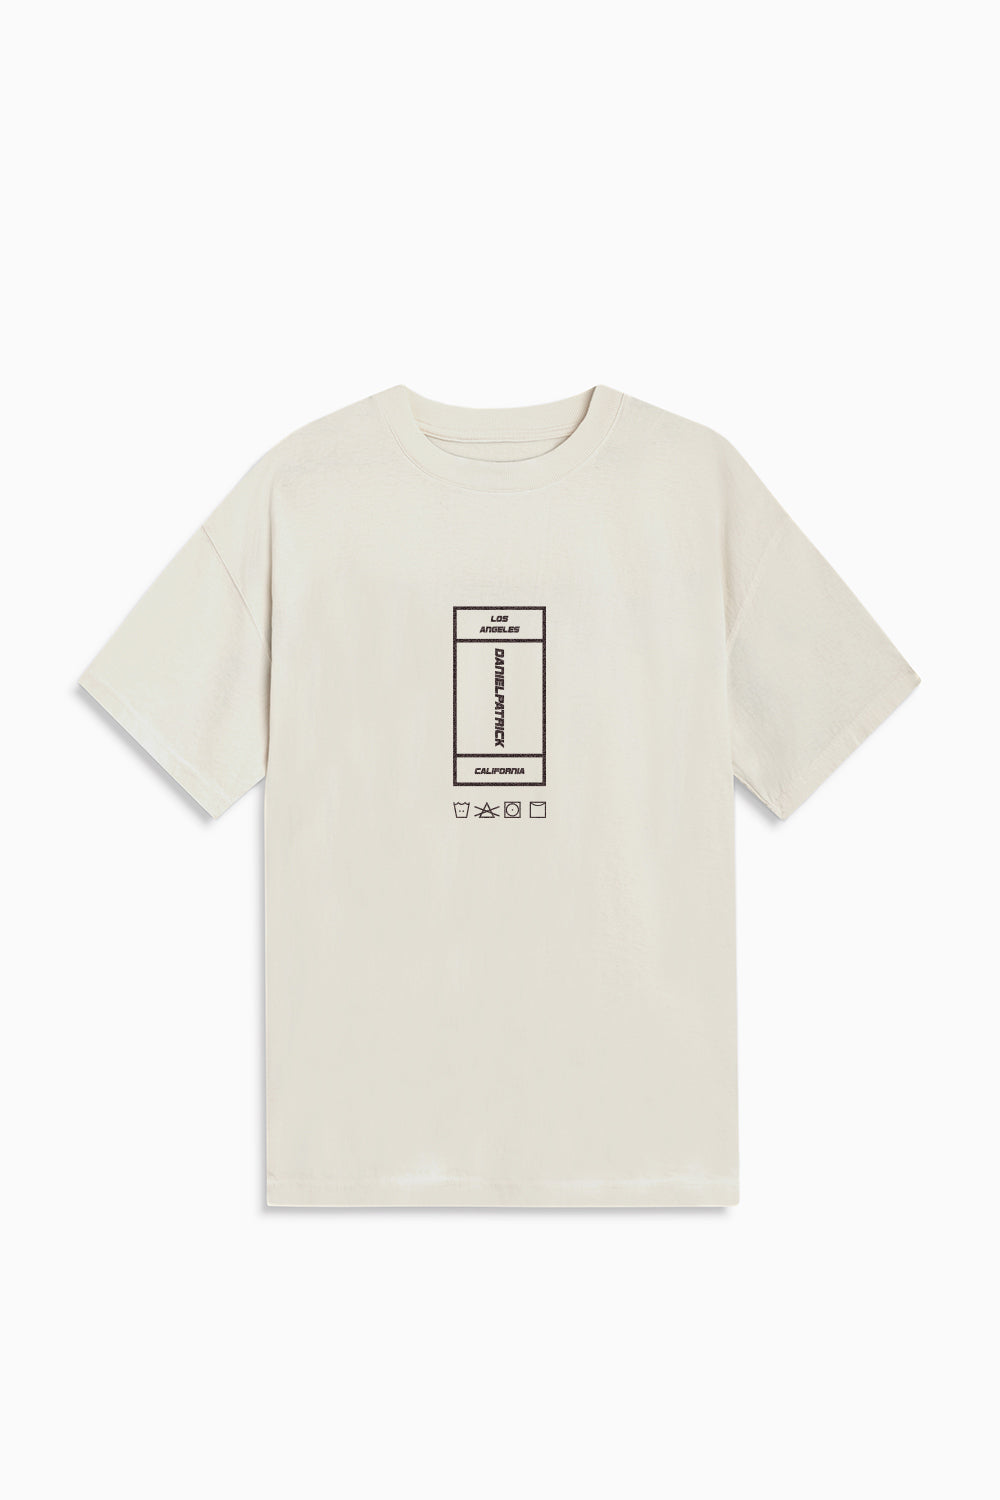 vertical rectangle tee / natural